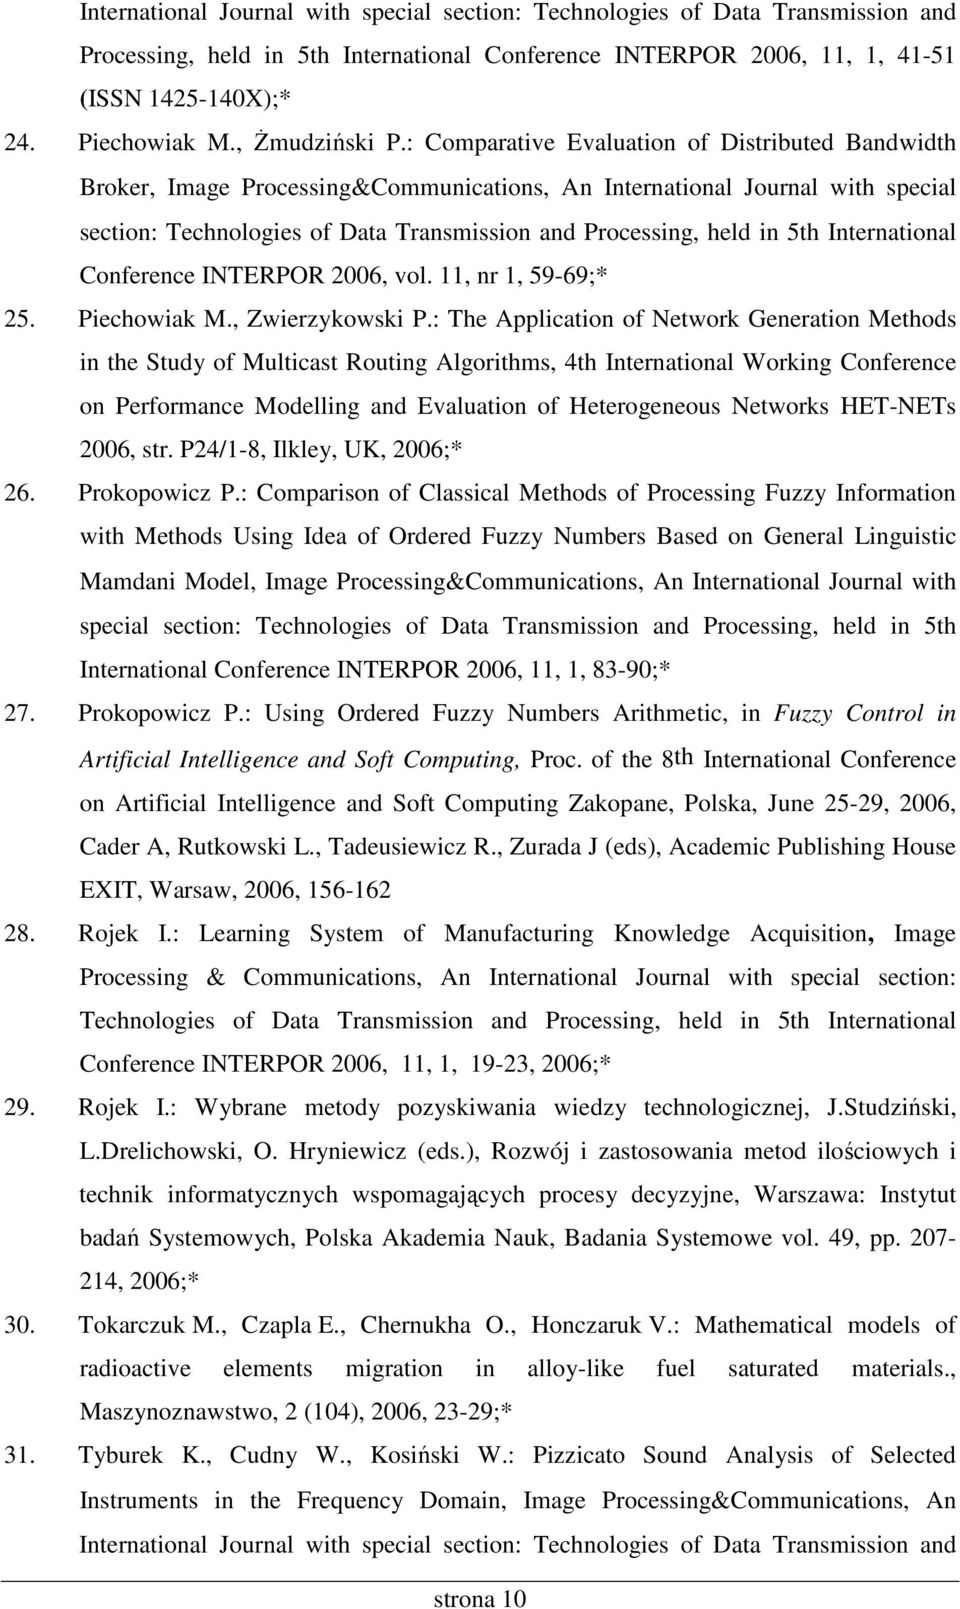 : Comparative Evaluation of Distributed Bandwidth Broker, Image Processing&Communications, An International Journal with special section: Technologies of Data Transmission and Processing, held in 5th